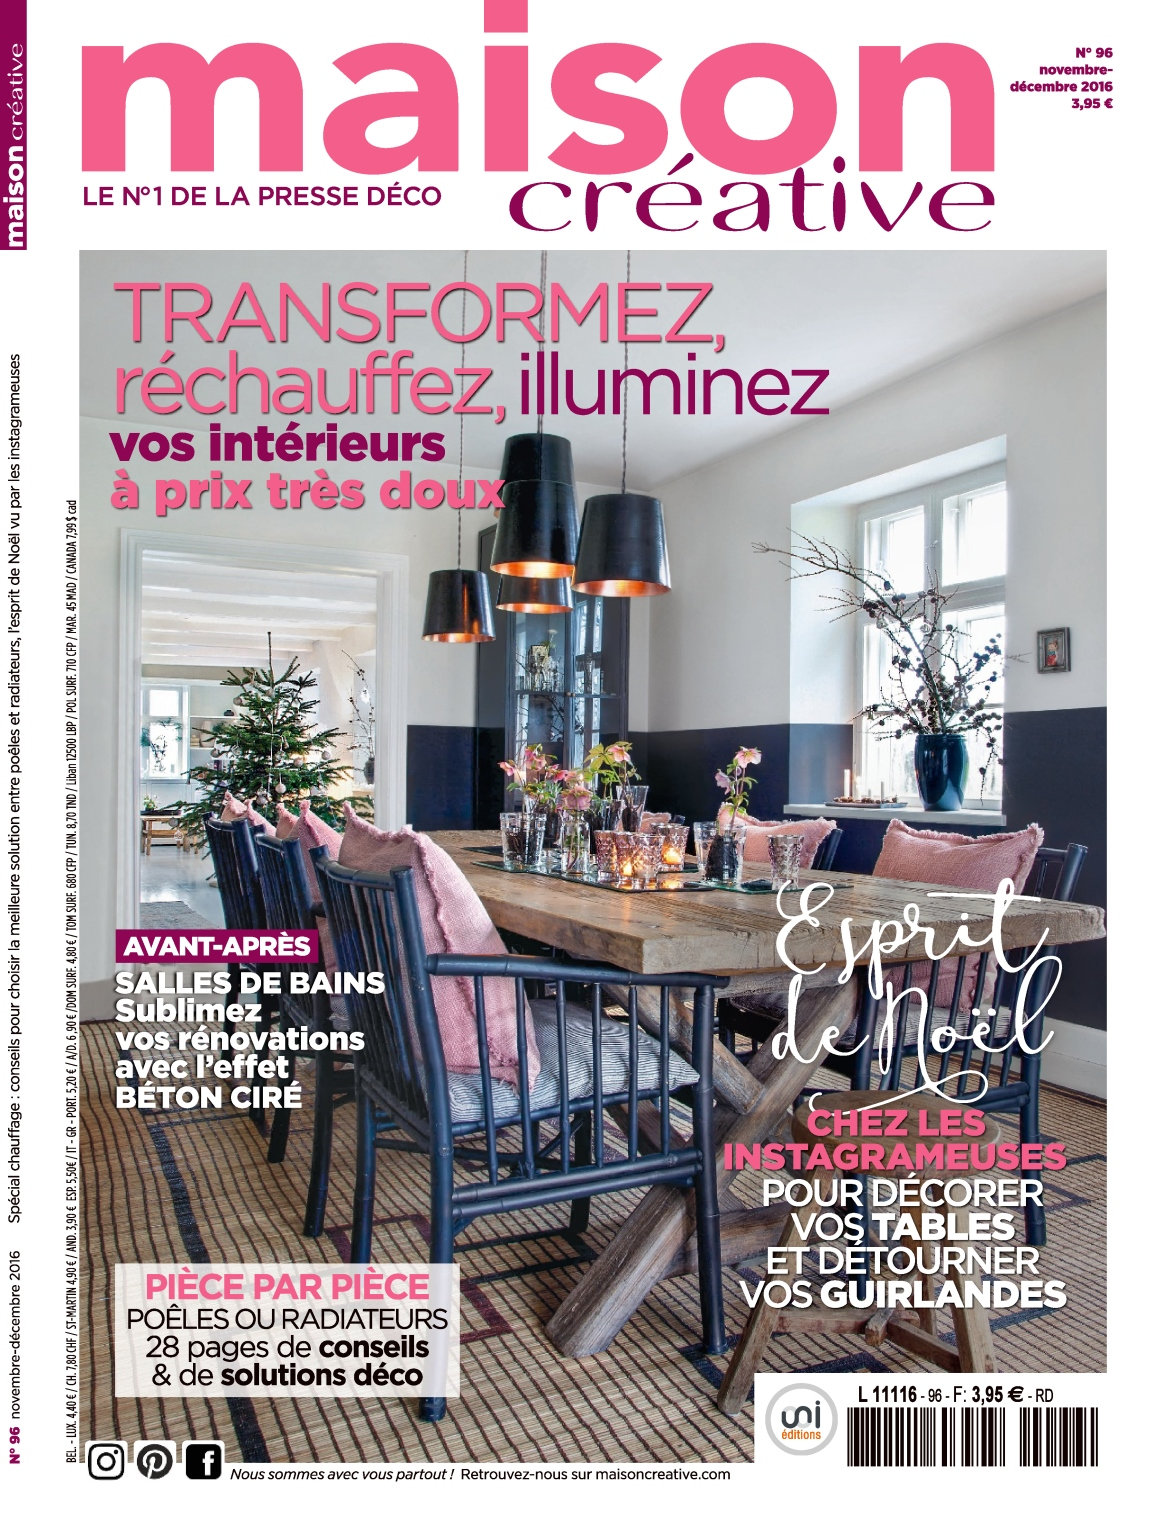 Maison Créative magazine November and December 2016